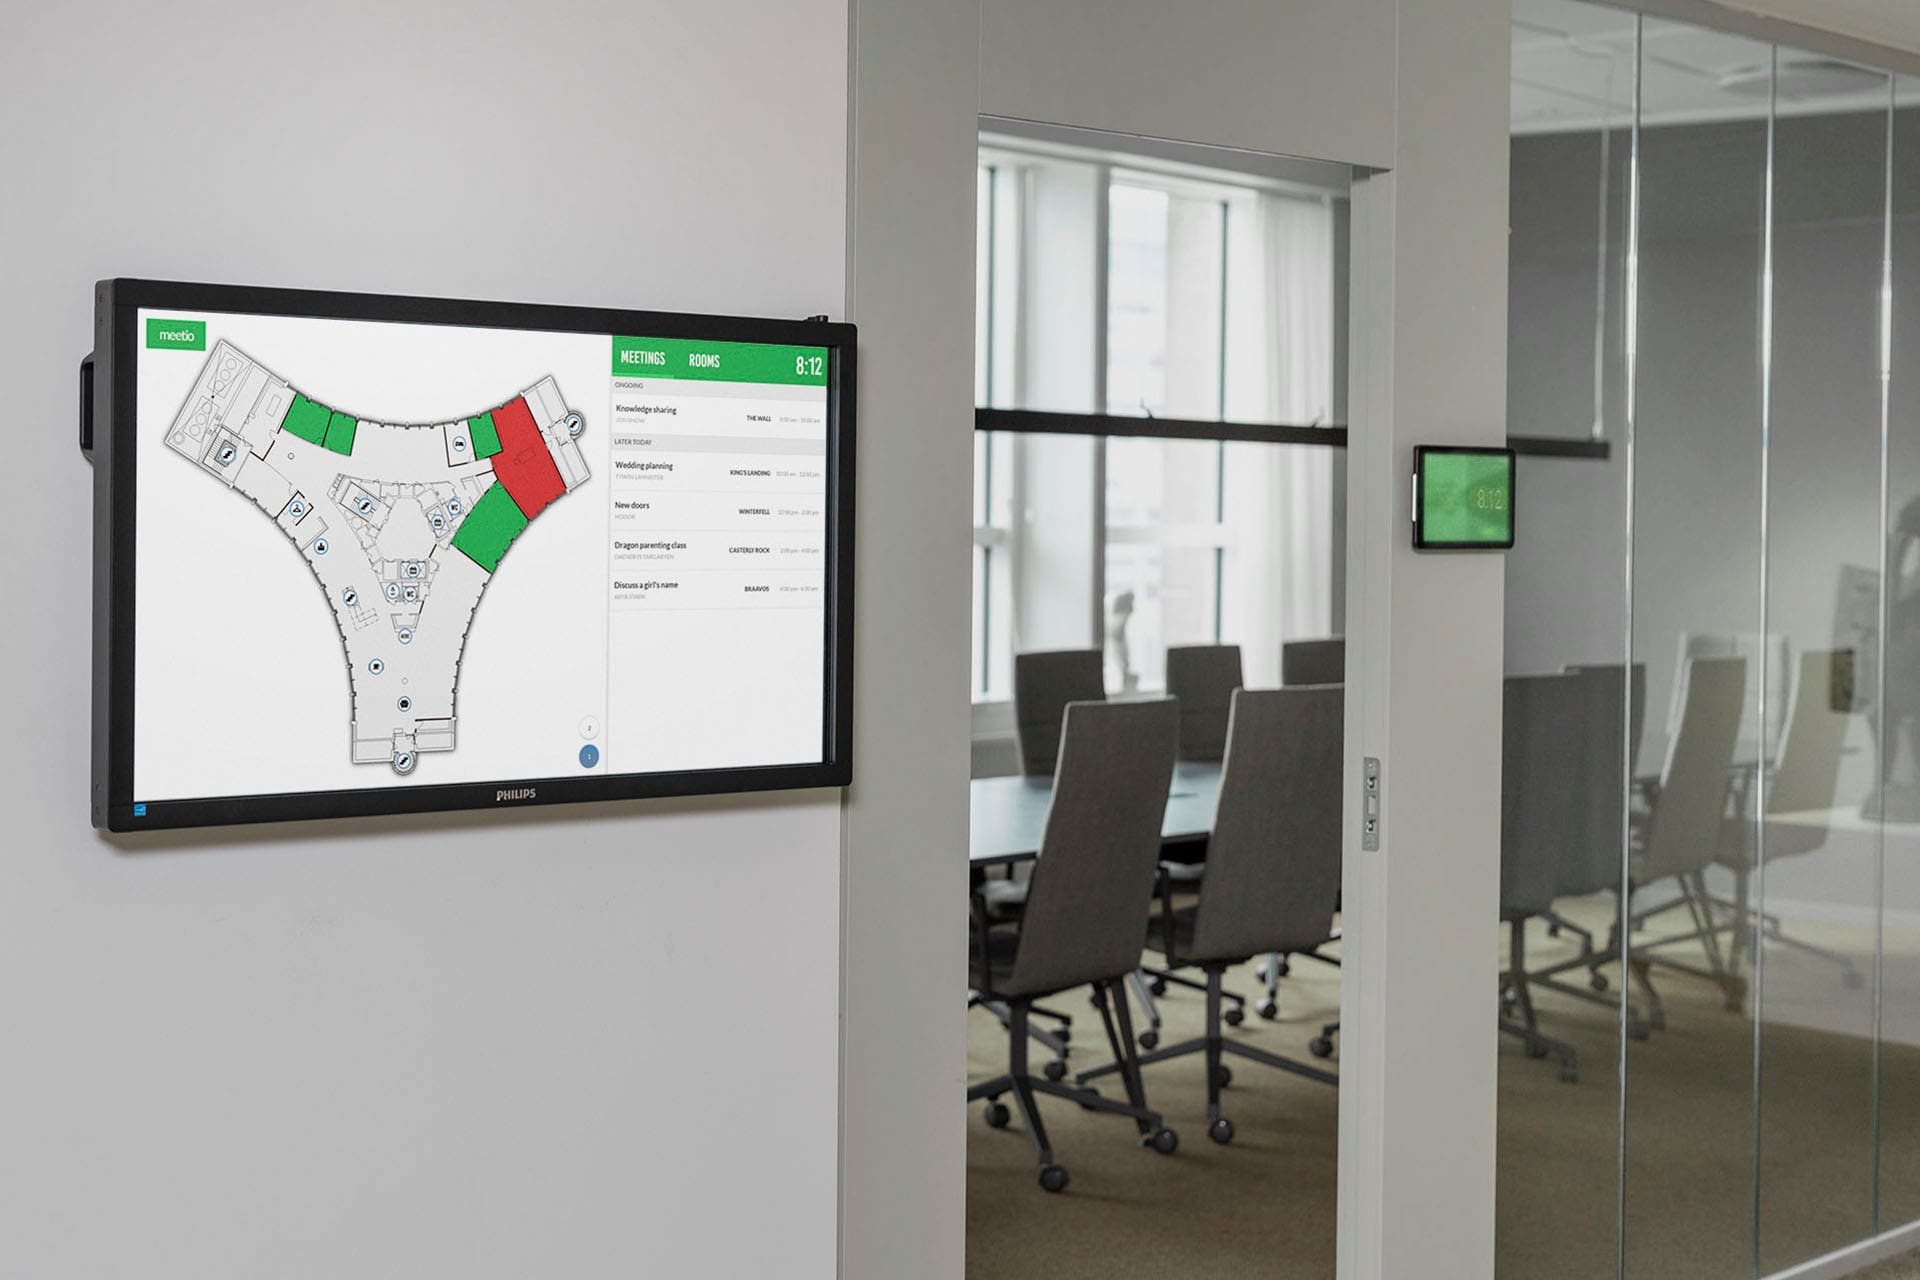 Meetio View screen with map view outside a conference room